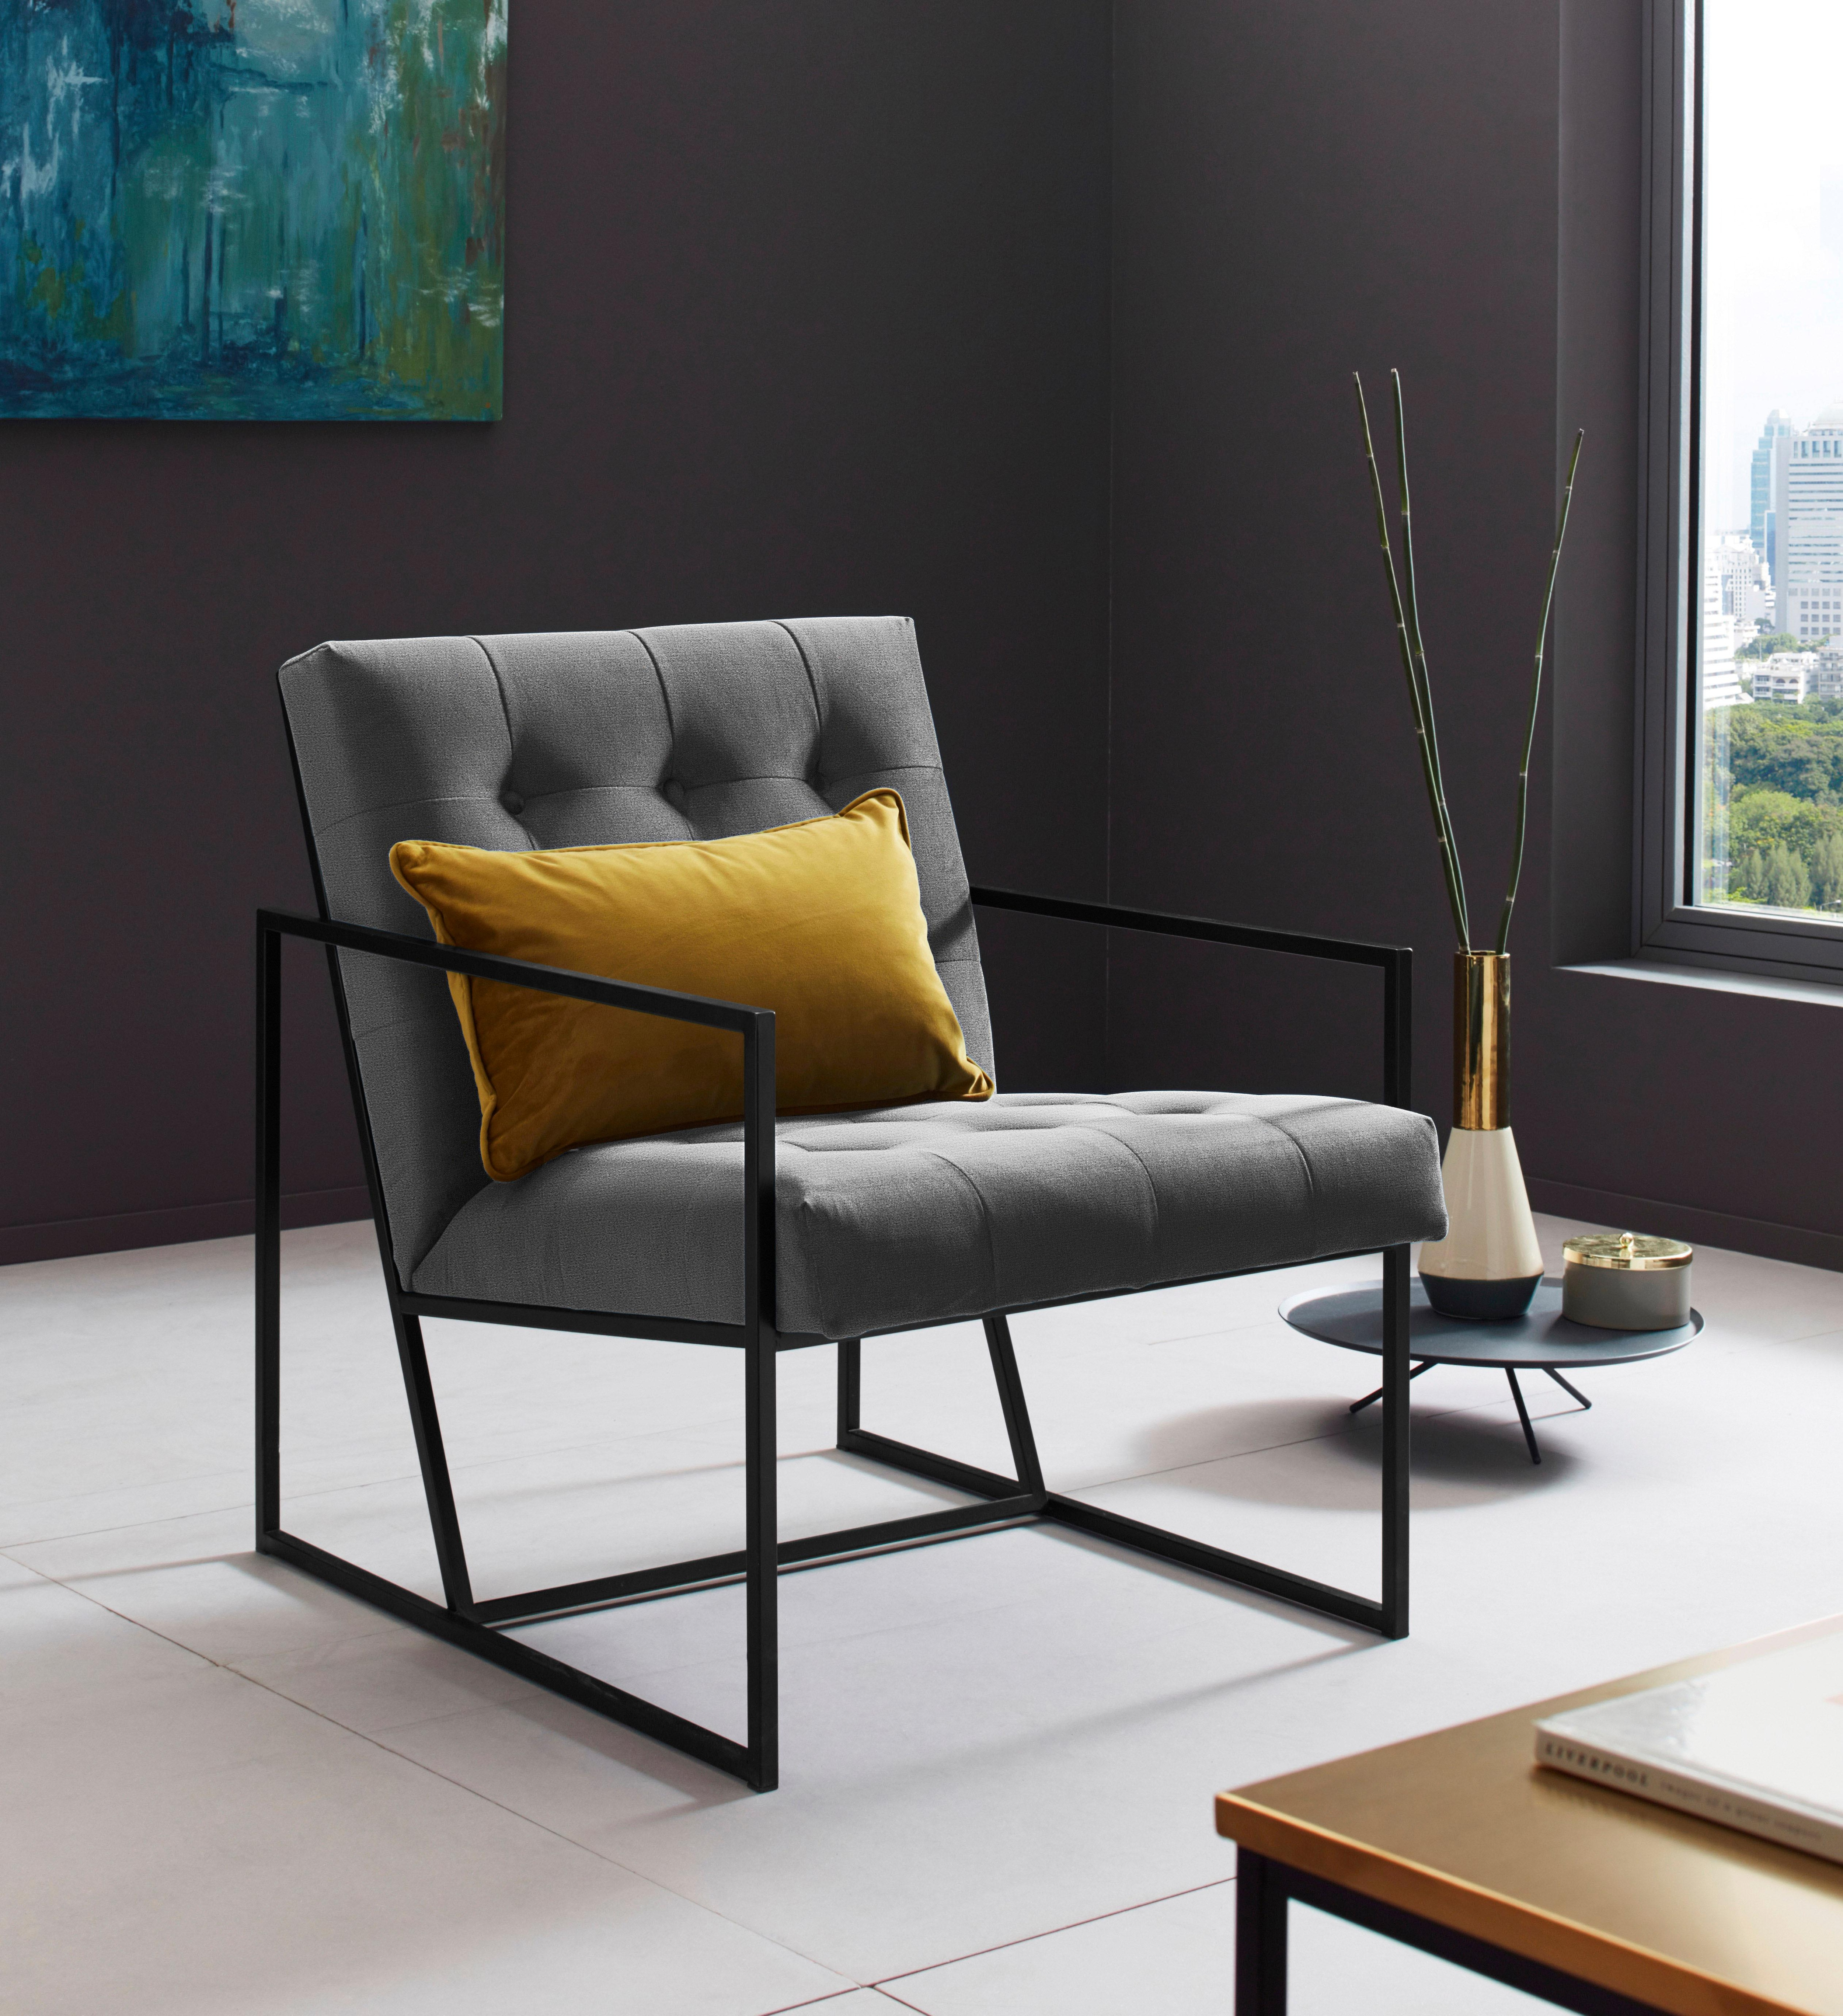 Places of Style Sessel Lounge Chair bestellen